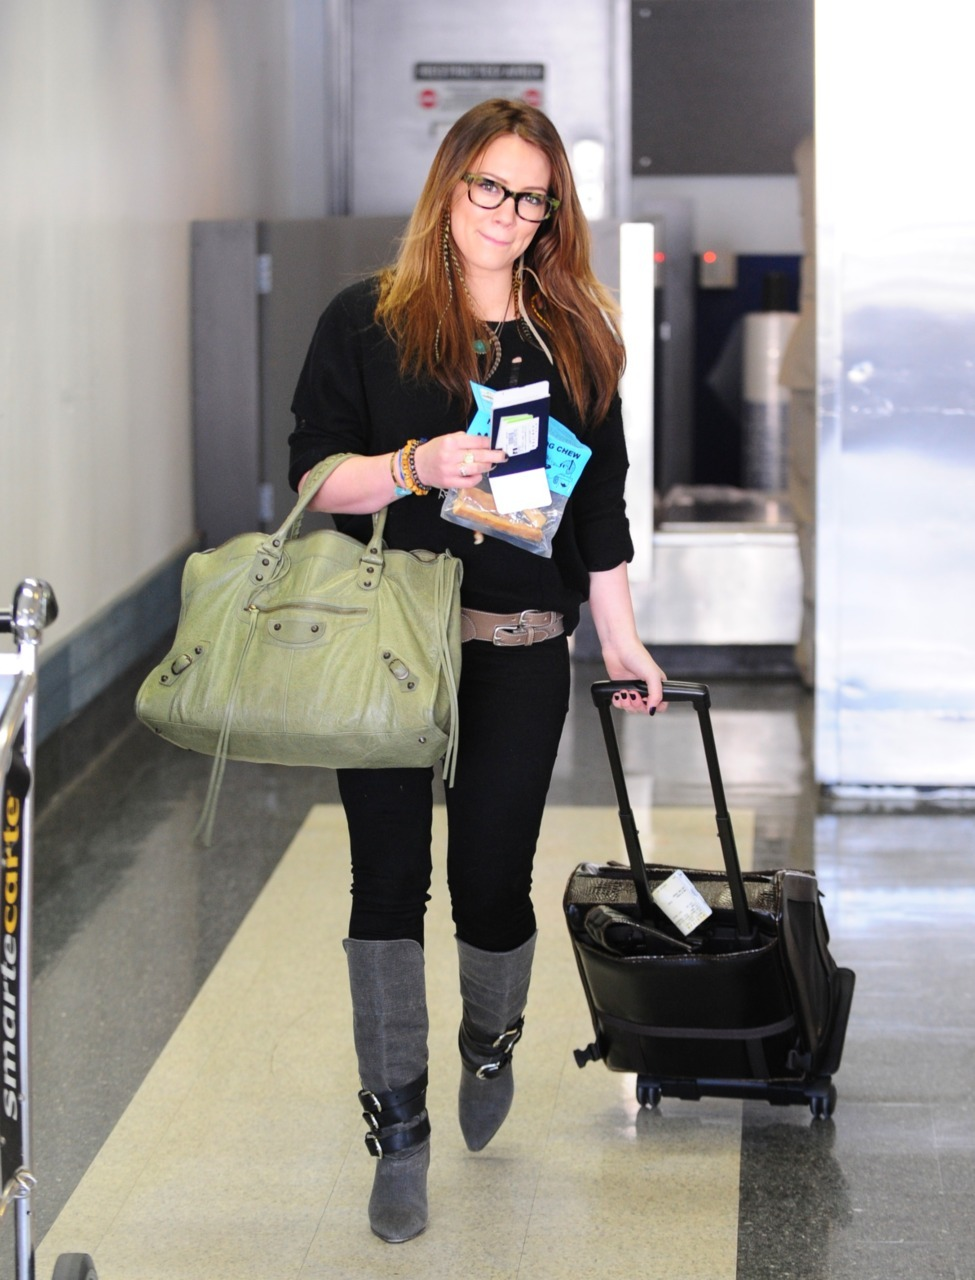 Hilary Duff flying out of LAX Airport - March 10, 2011